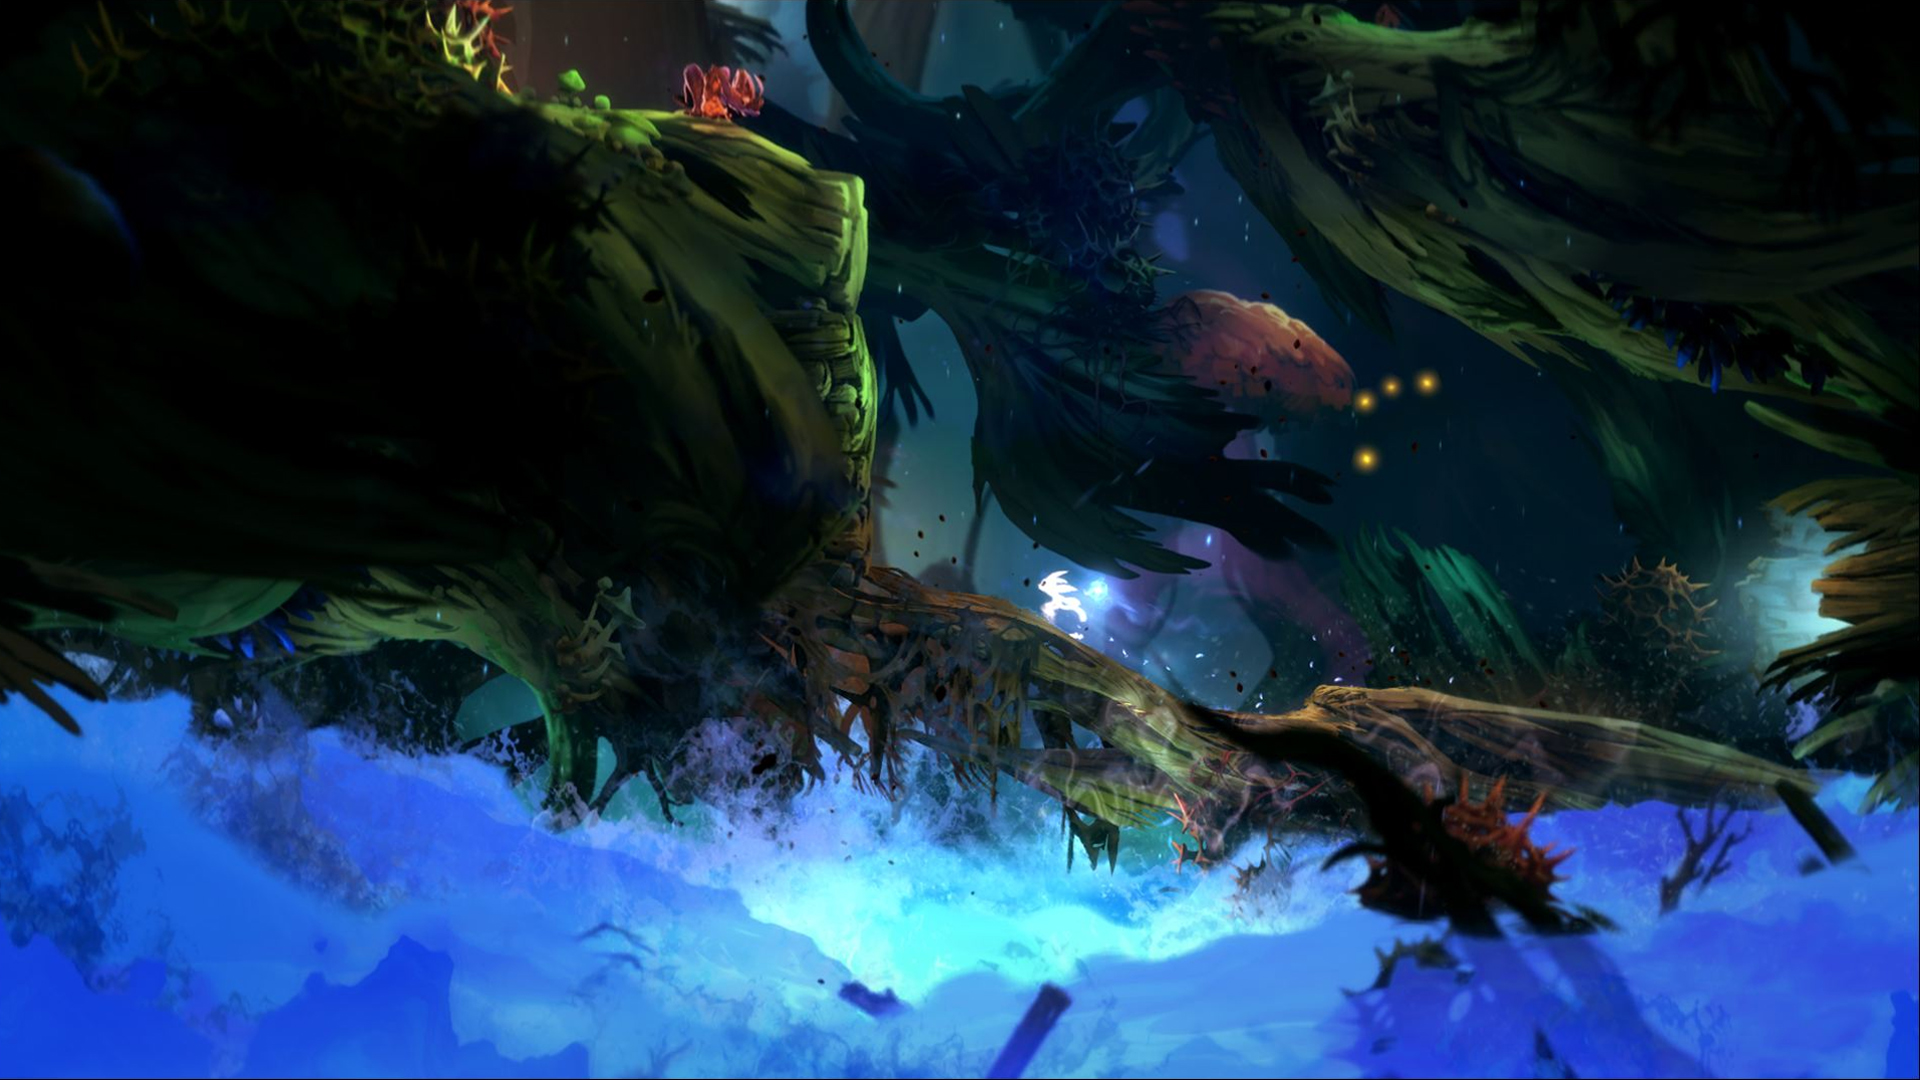 Ori Character Ori And The Blind Forest Hd Wallpaper 2180411